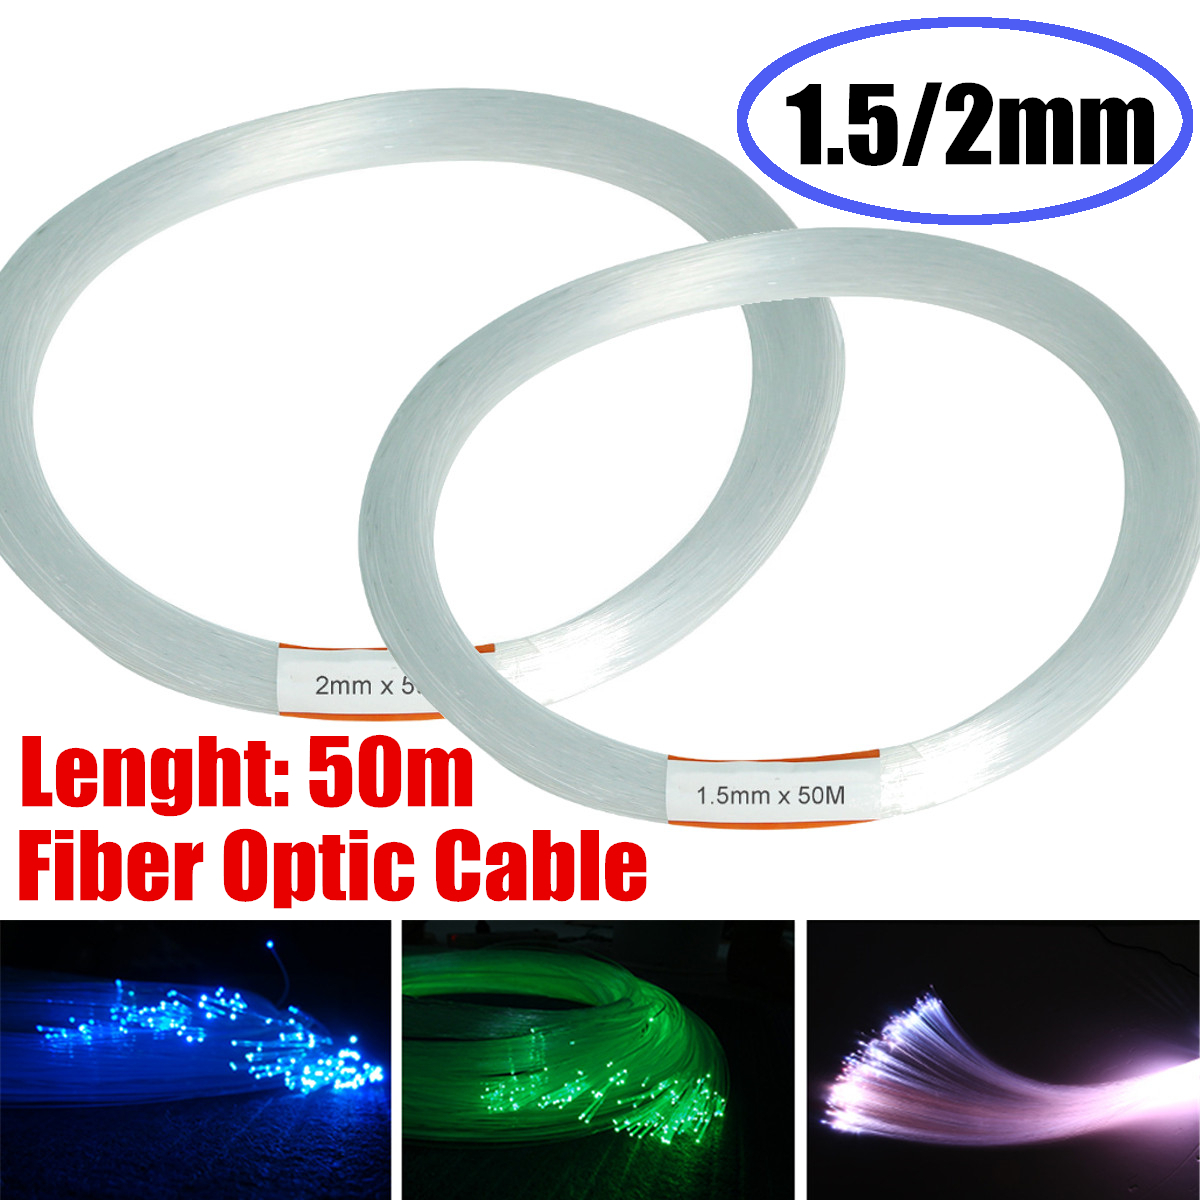 Clear PMMA Optic Cable Fiber Light 50m/164ft End Grow LED Light Guide Kit DIY Holiday Commercial Lighting 1.5mm/2mm Christmas